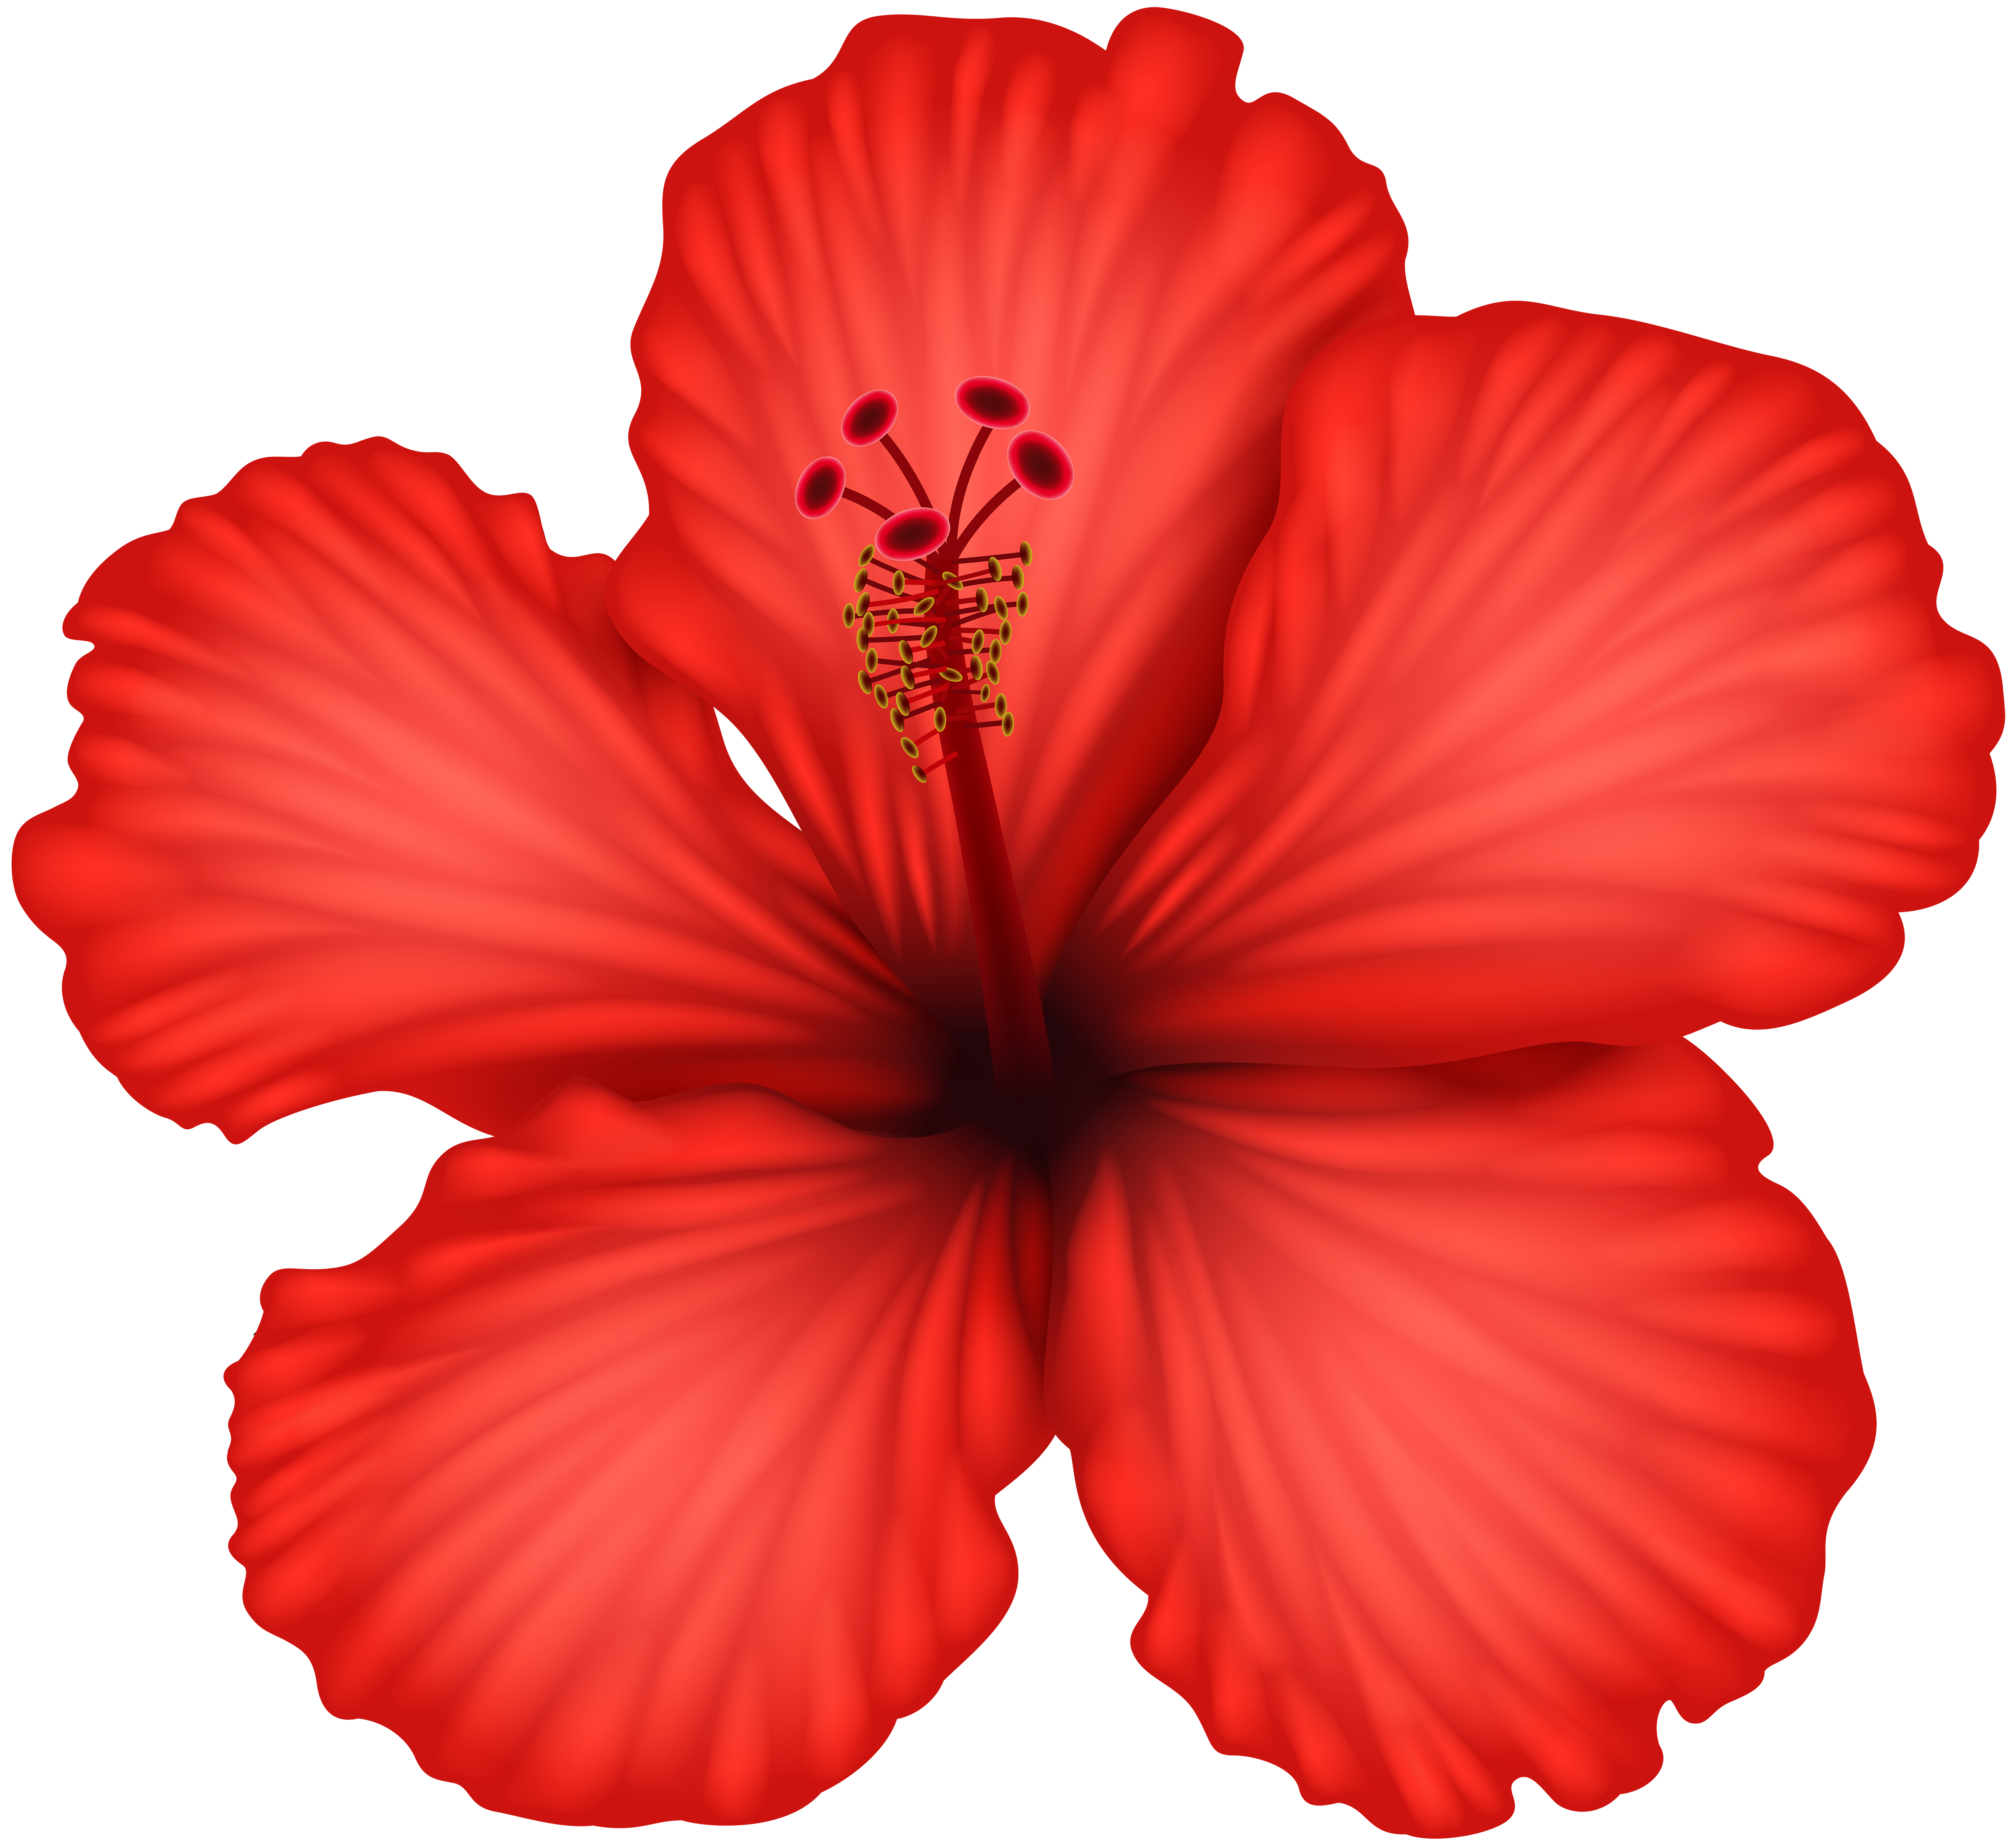 Red hibiscus clip art gallery yopriceville high quality